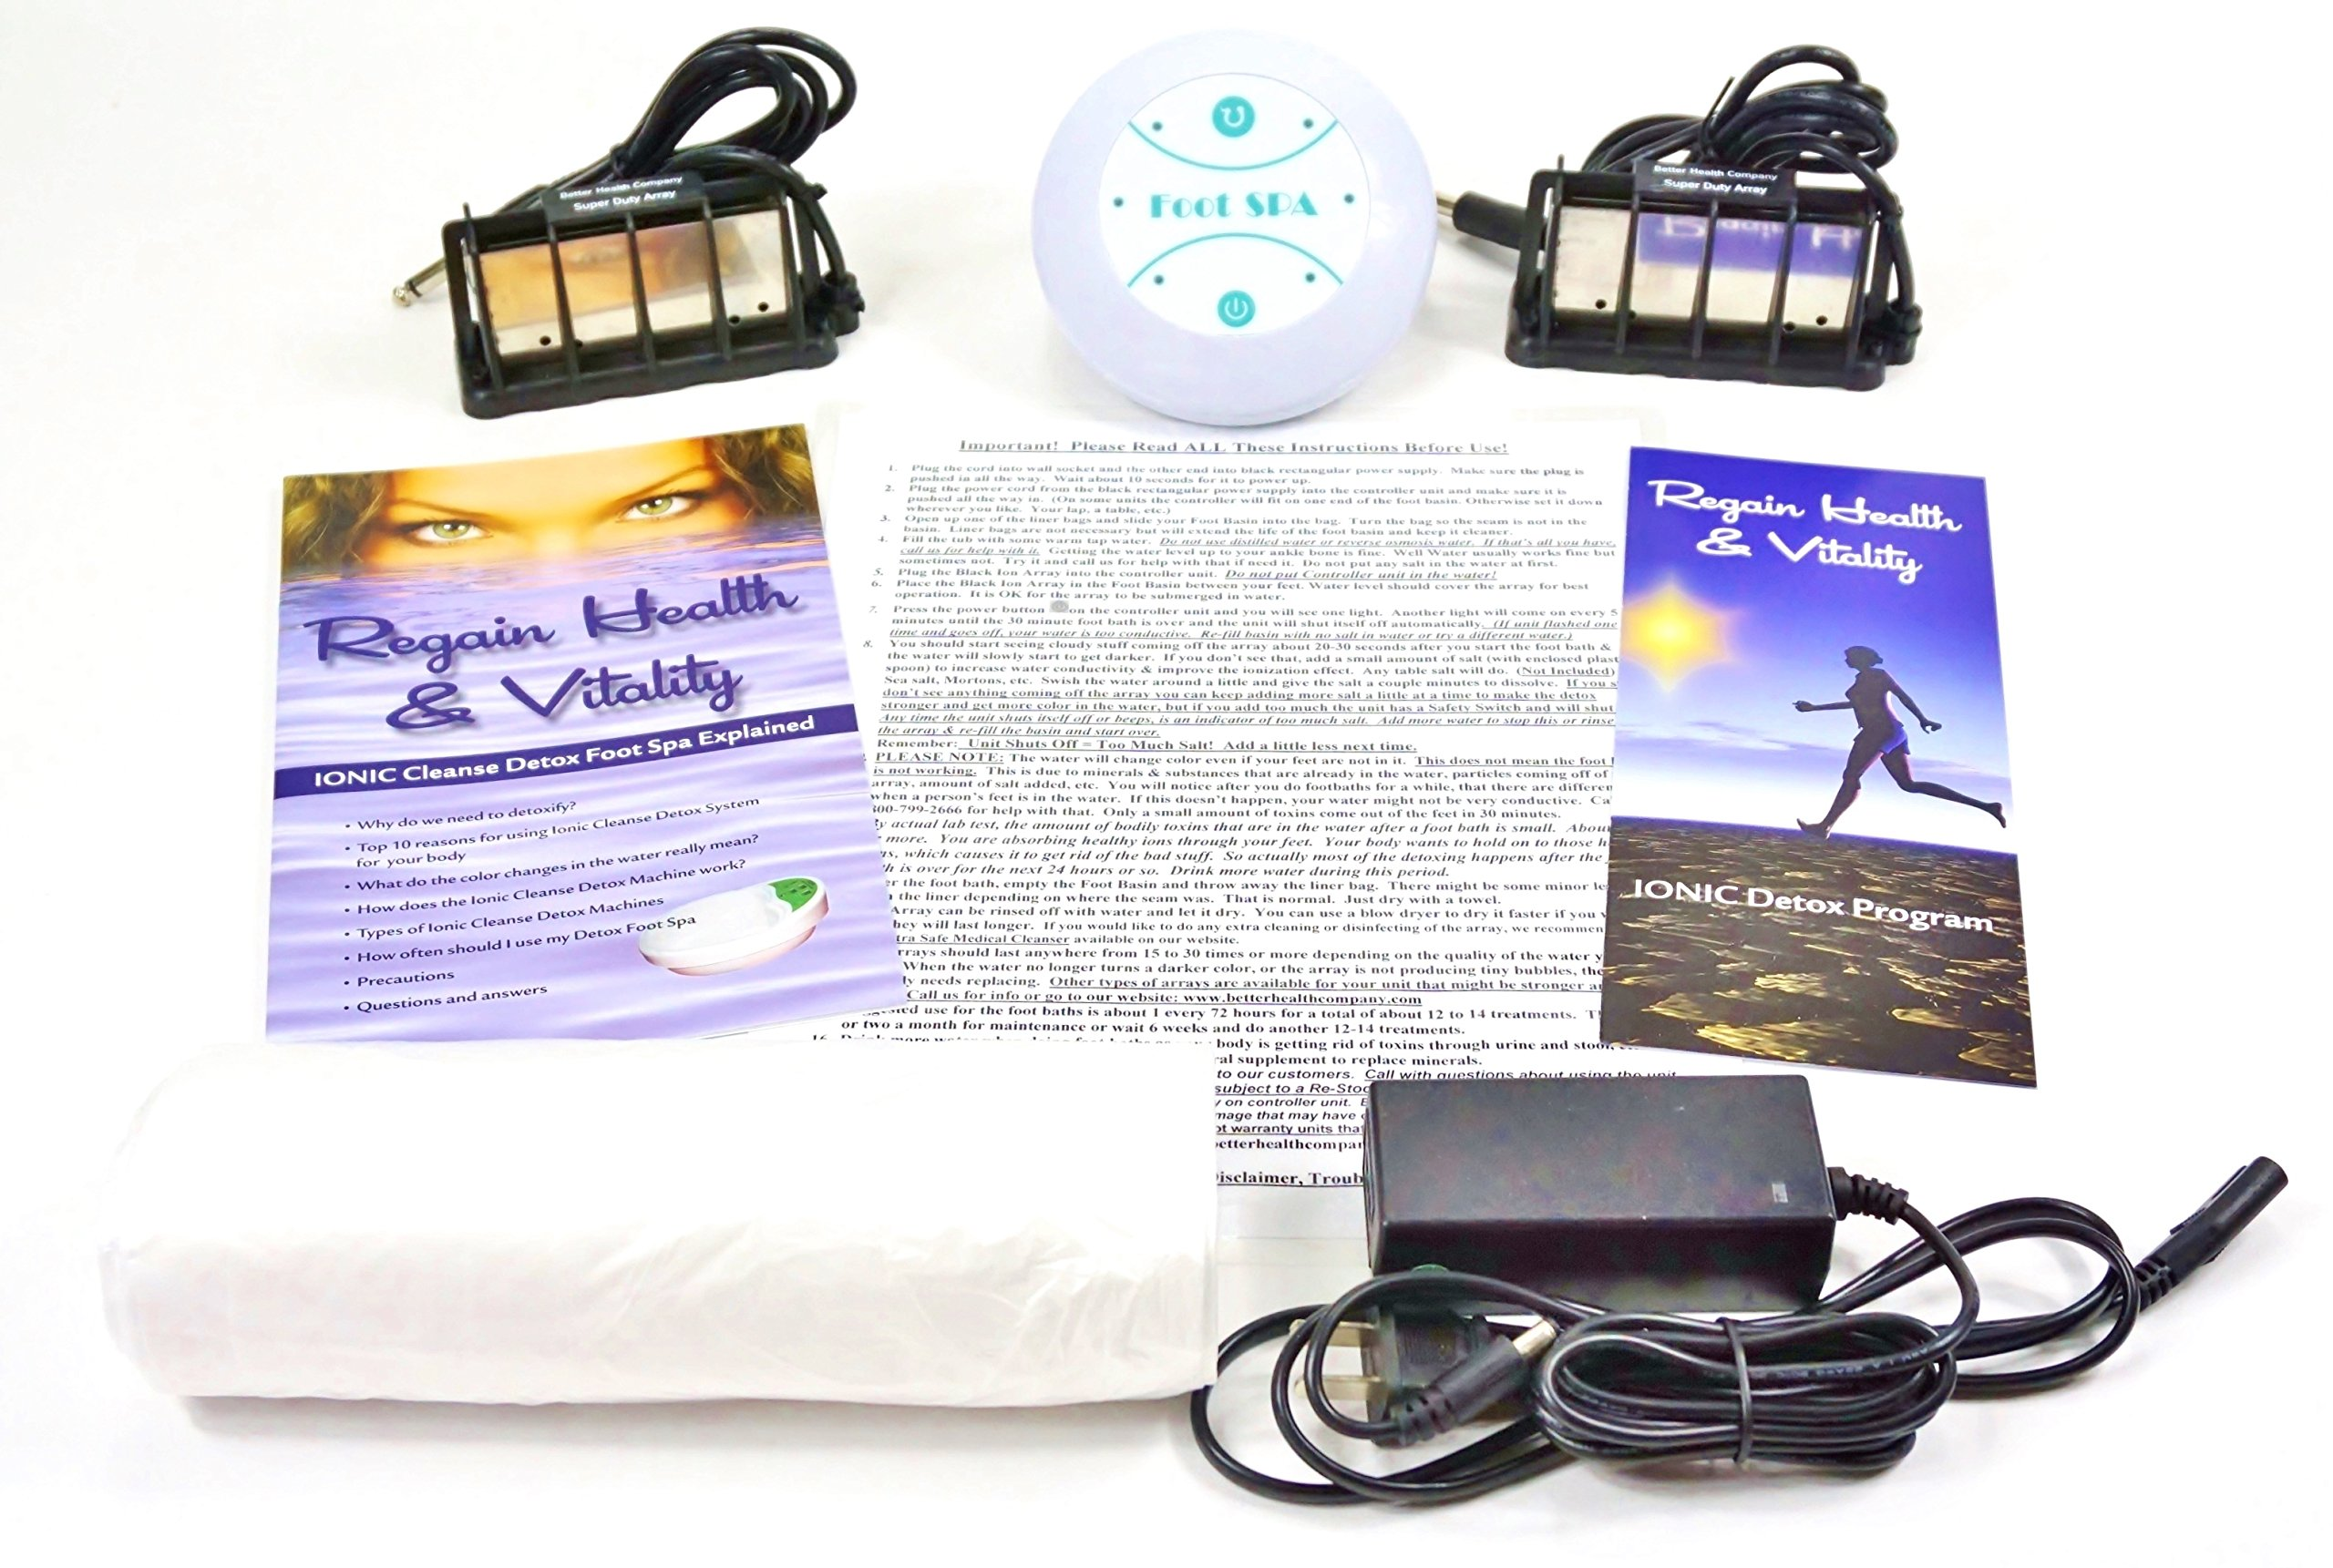 Ion Detox Ionic Detox Foot Bath Spa Chi Cleanse Unit for Home Use. WITH UPGRADED SUPER DUTY ARRAYS!